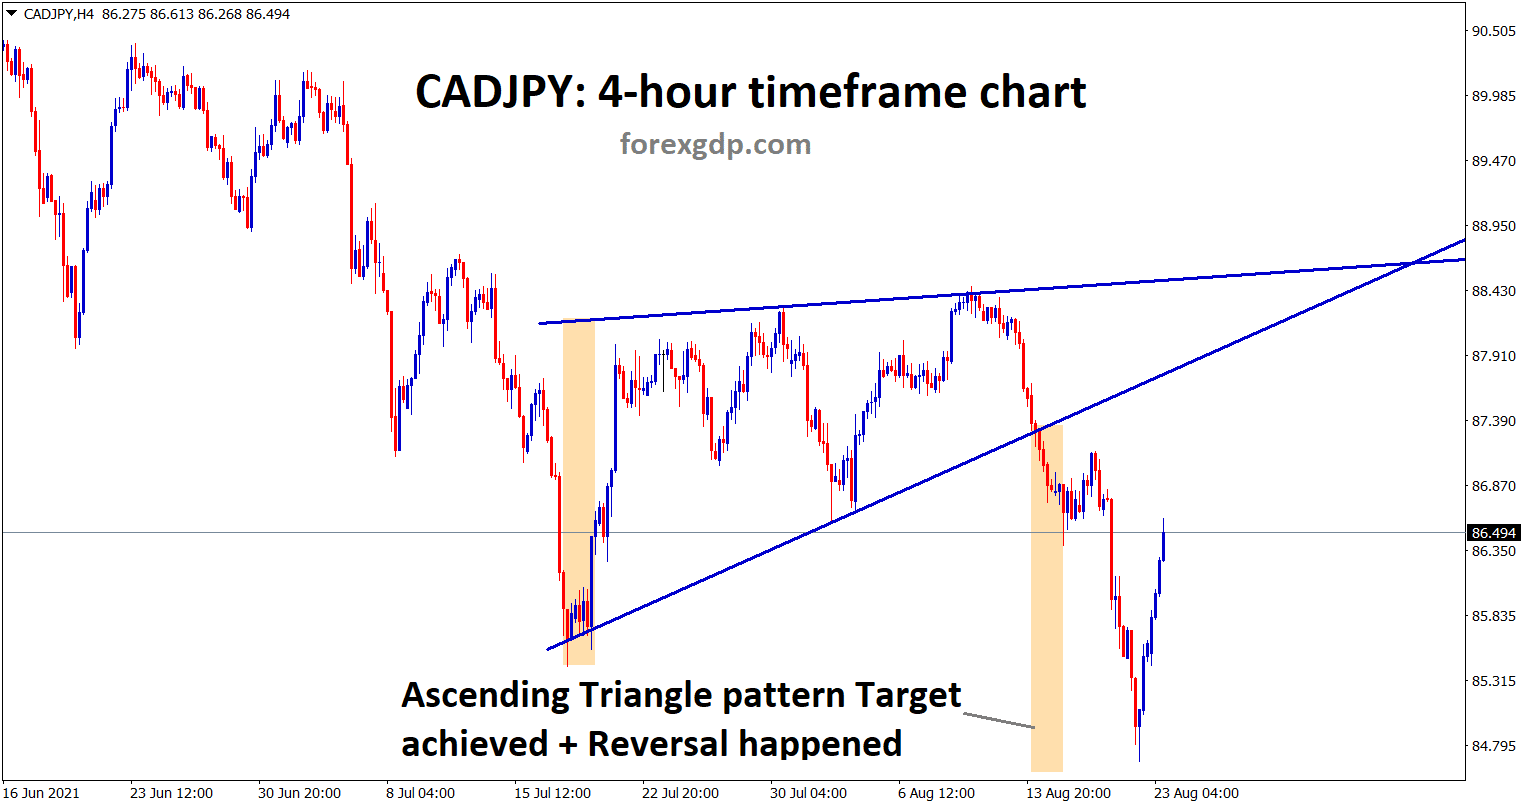 CADJPY achieved its Ascending Triangle Pattern target and starts to reverse